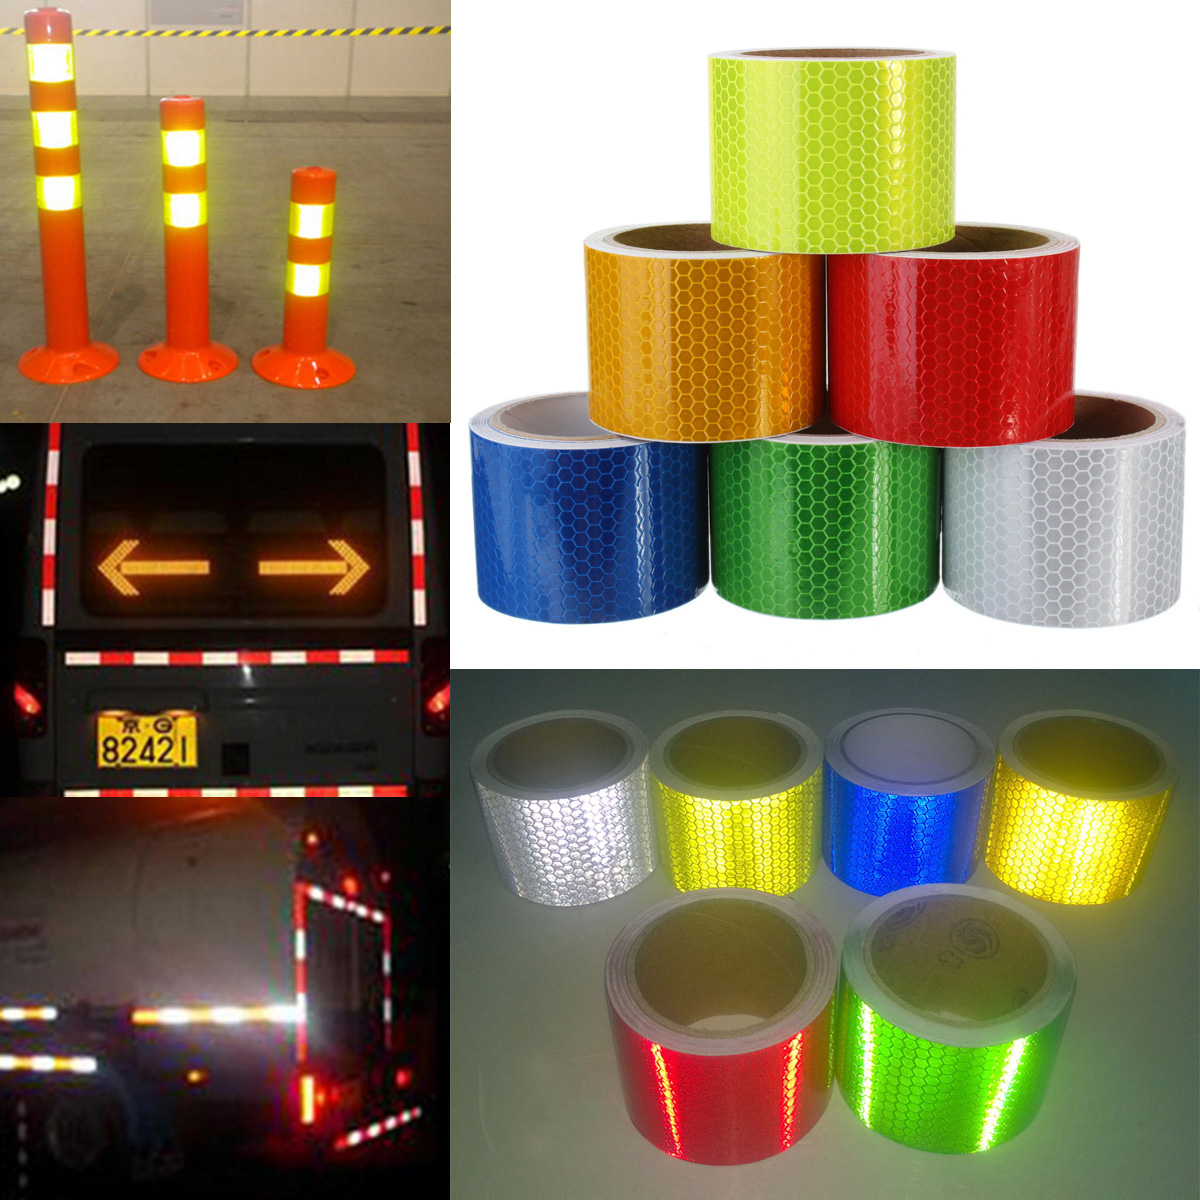 5cm 215 3m Safety Caution Reflective Tape Warning Tape Sticker